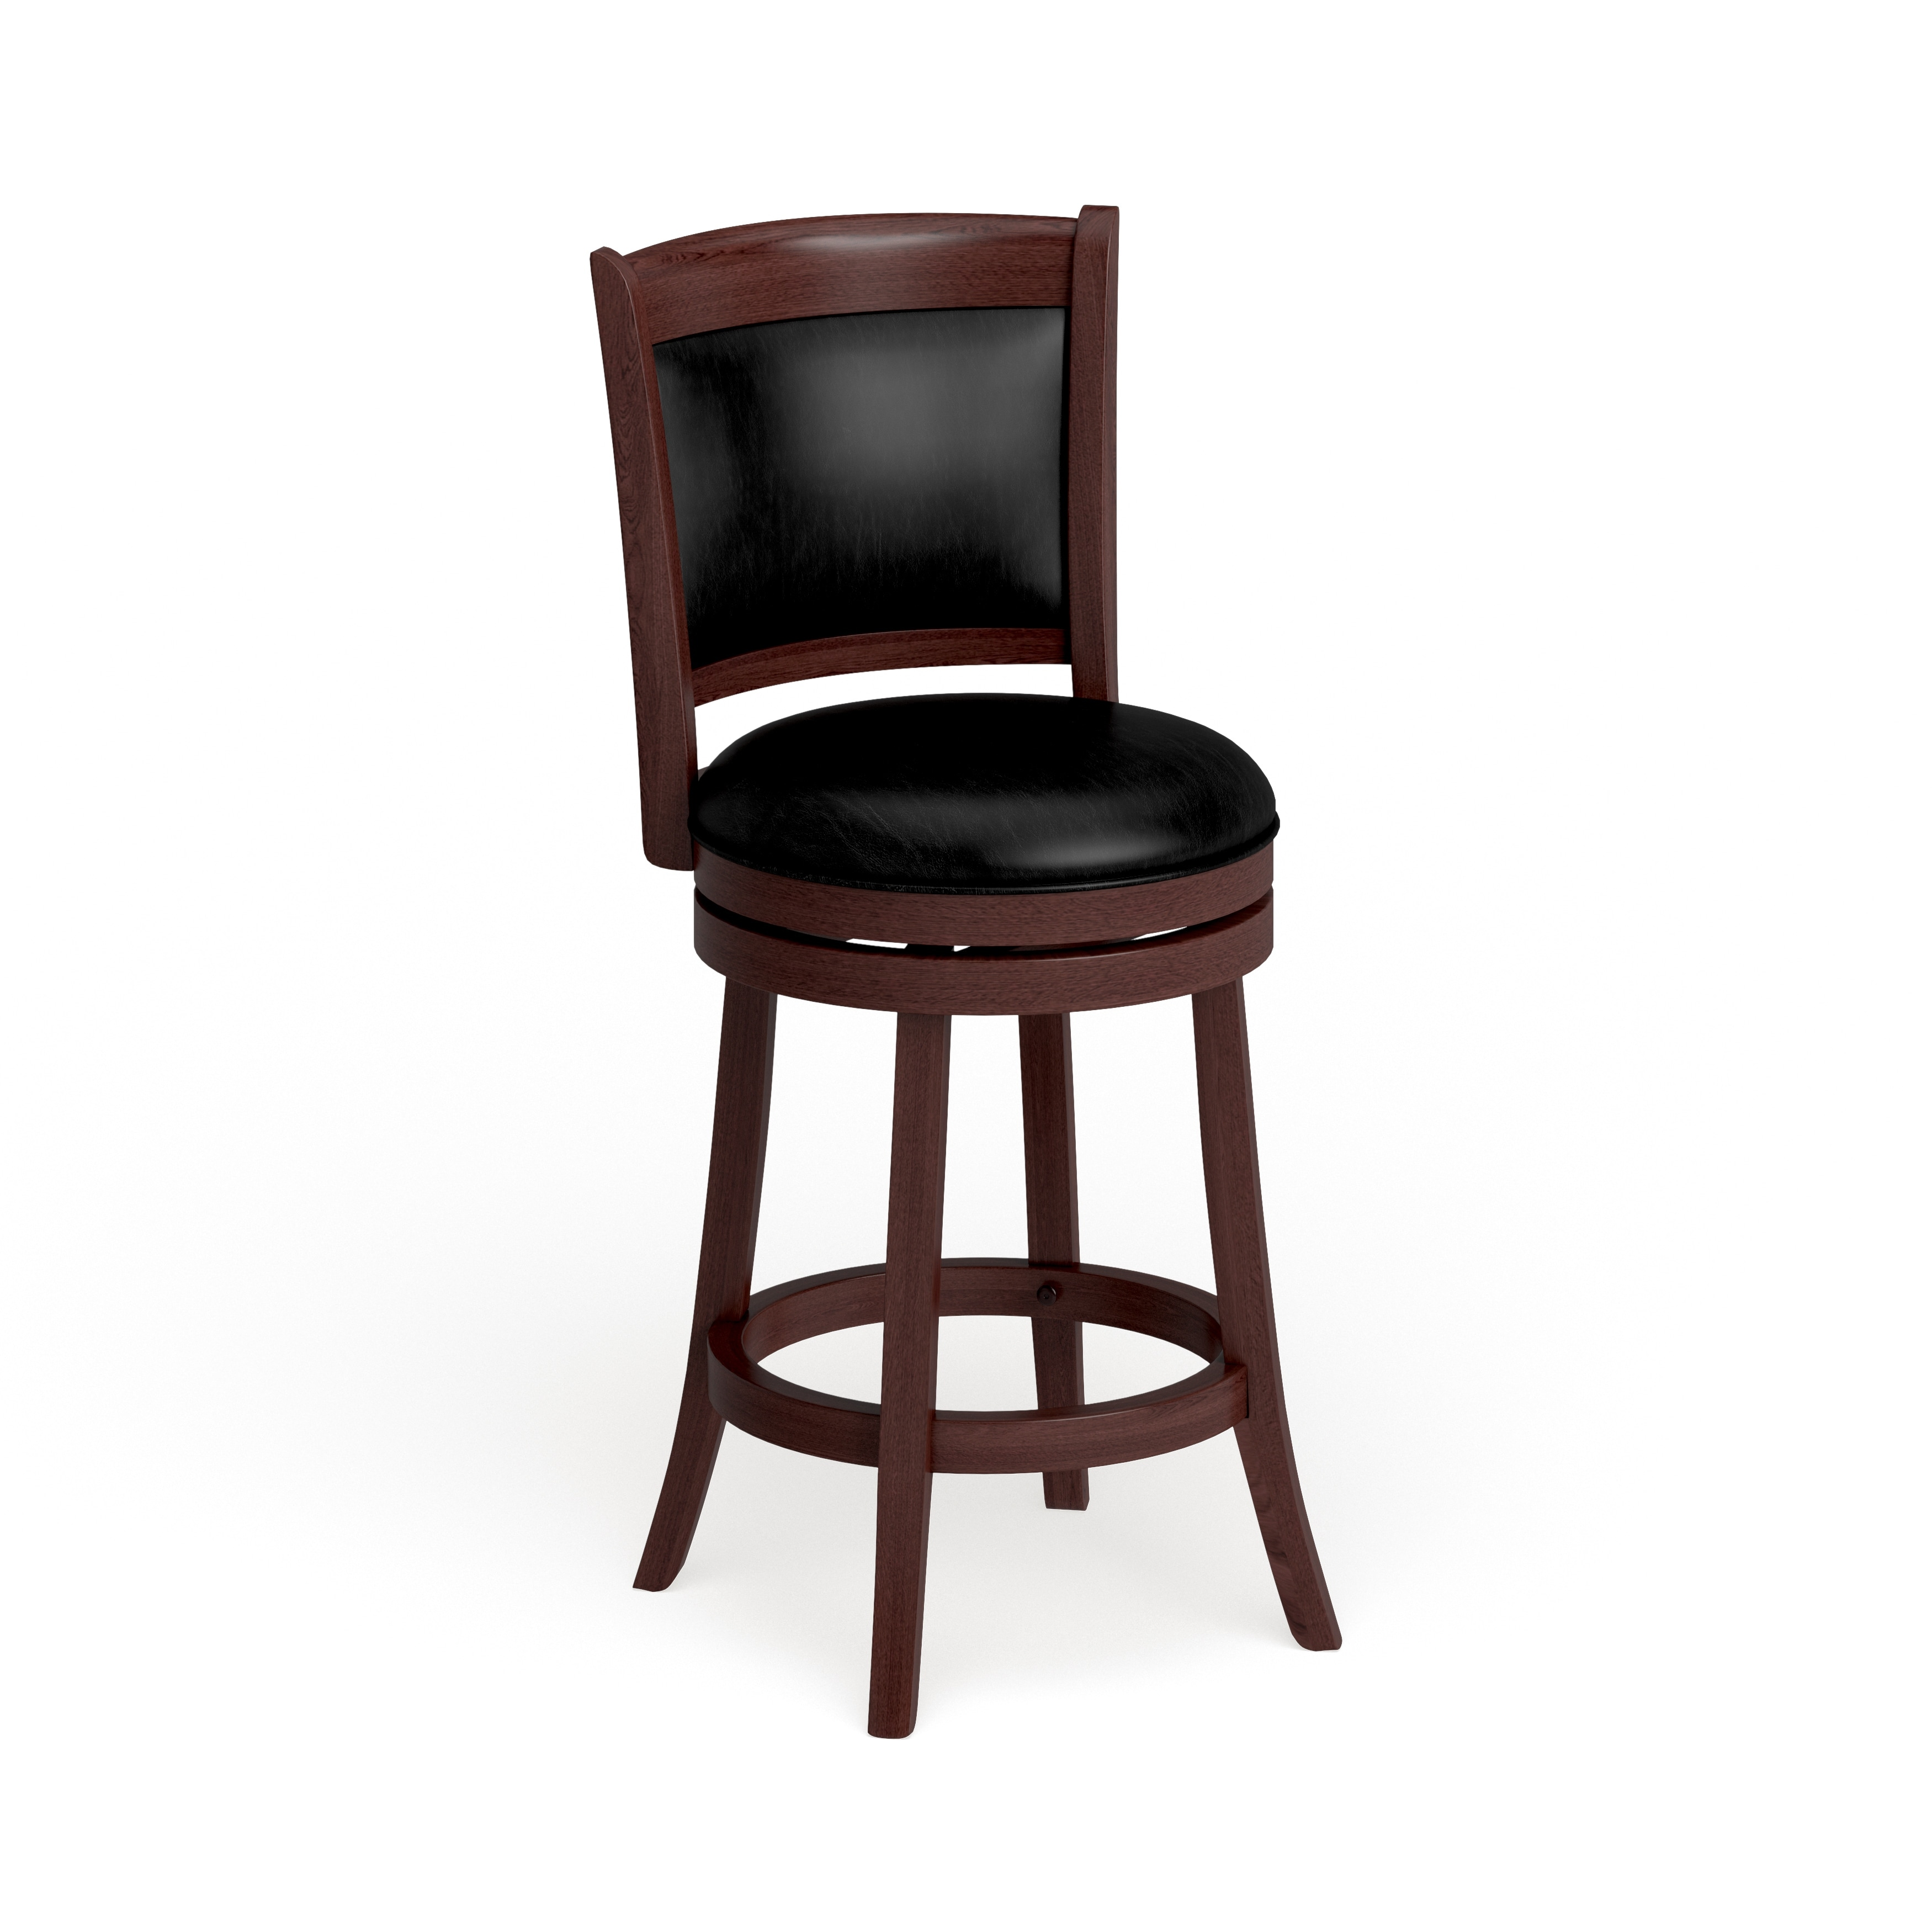 Verona Swivel High Back Counter Height Stool By Inspire Q Classic On Sale Overstock 4101670